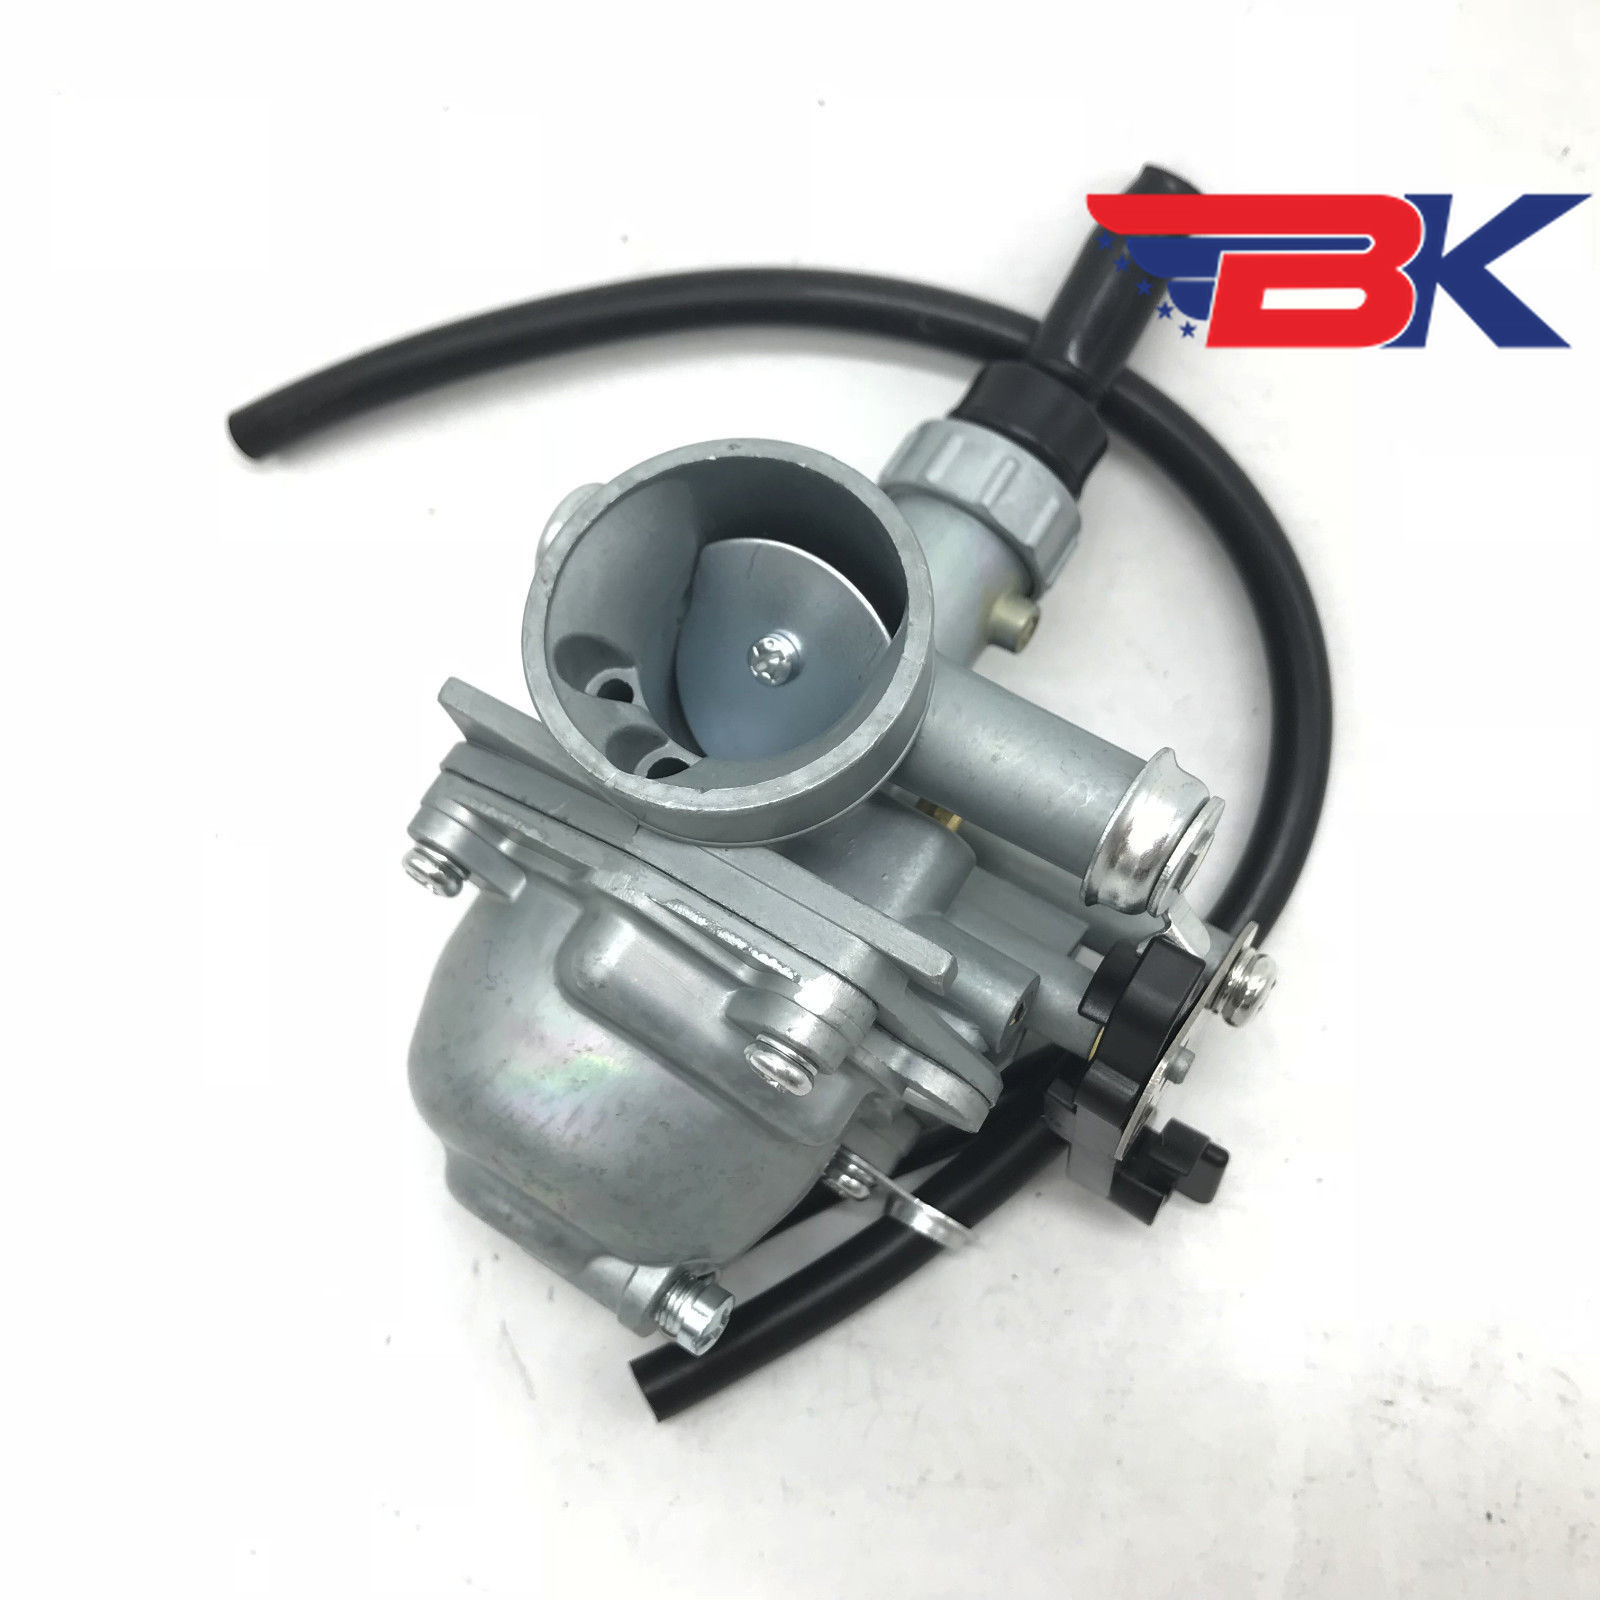 Atv,rv,boat & Other Vehicle Back To Search Resultsautomobiles & Motorcycles Reliable Vm16 Mikuni Carby 50cc 70cc 110 125cc Pit Dirt Bike Atv Scooter 19mm Z50 Dax Carb Carburetor